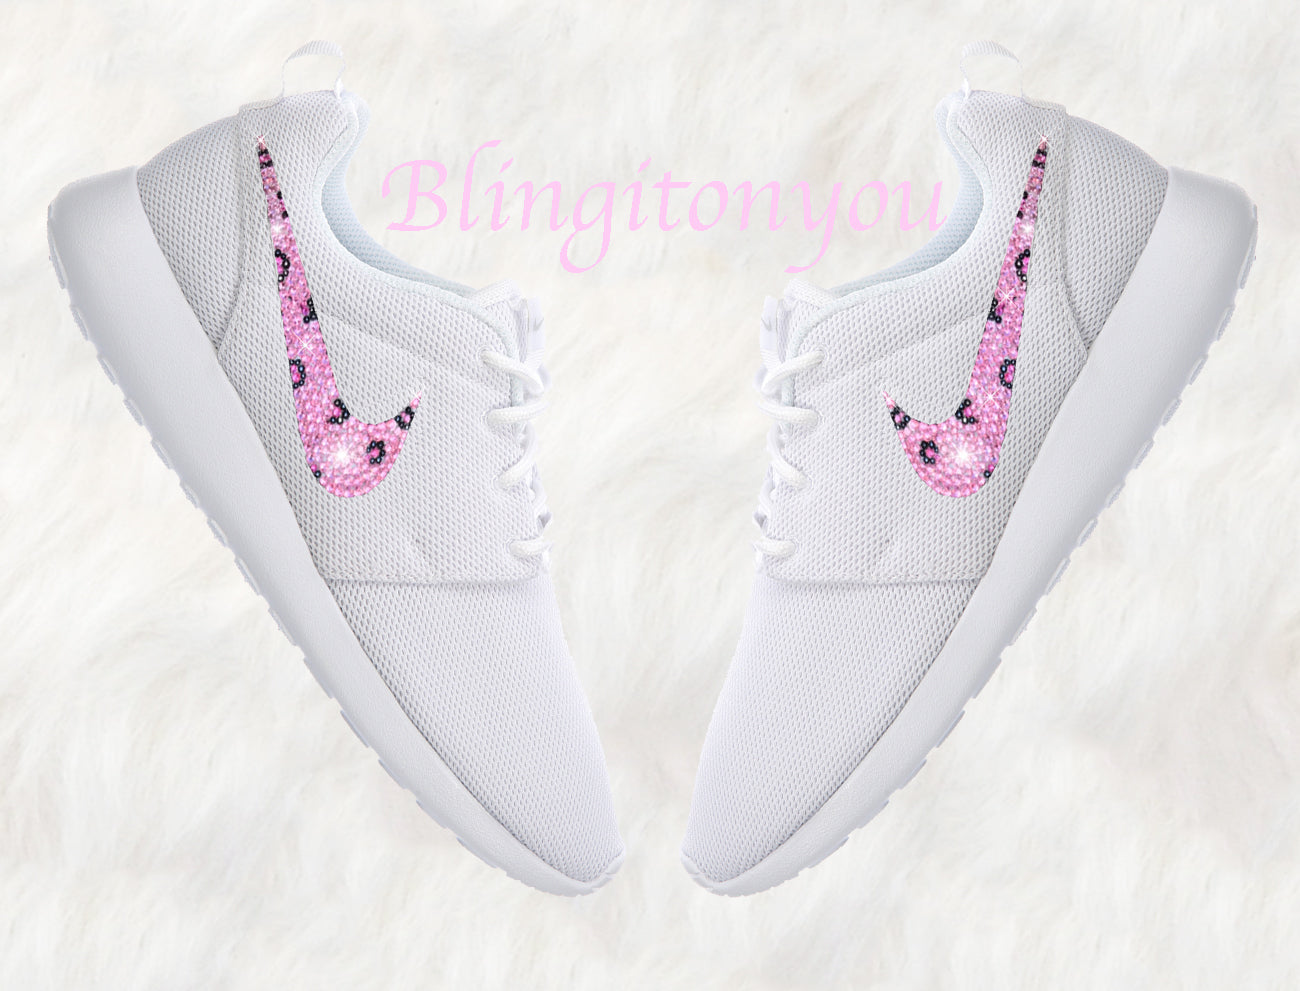 b77cc3d6e124 Swarovski Nike Roshe One Women s Shoes White Blinged Out With Leopard Pink  Swarovski - Swarovski Nike Shoes - Nike Bling Shoes